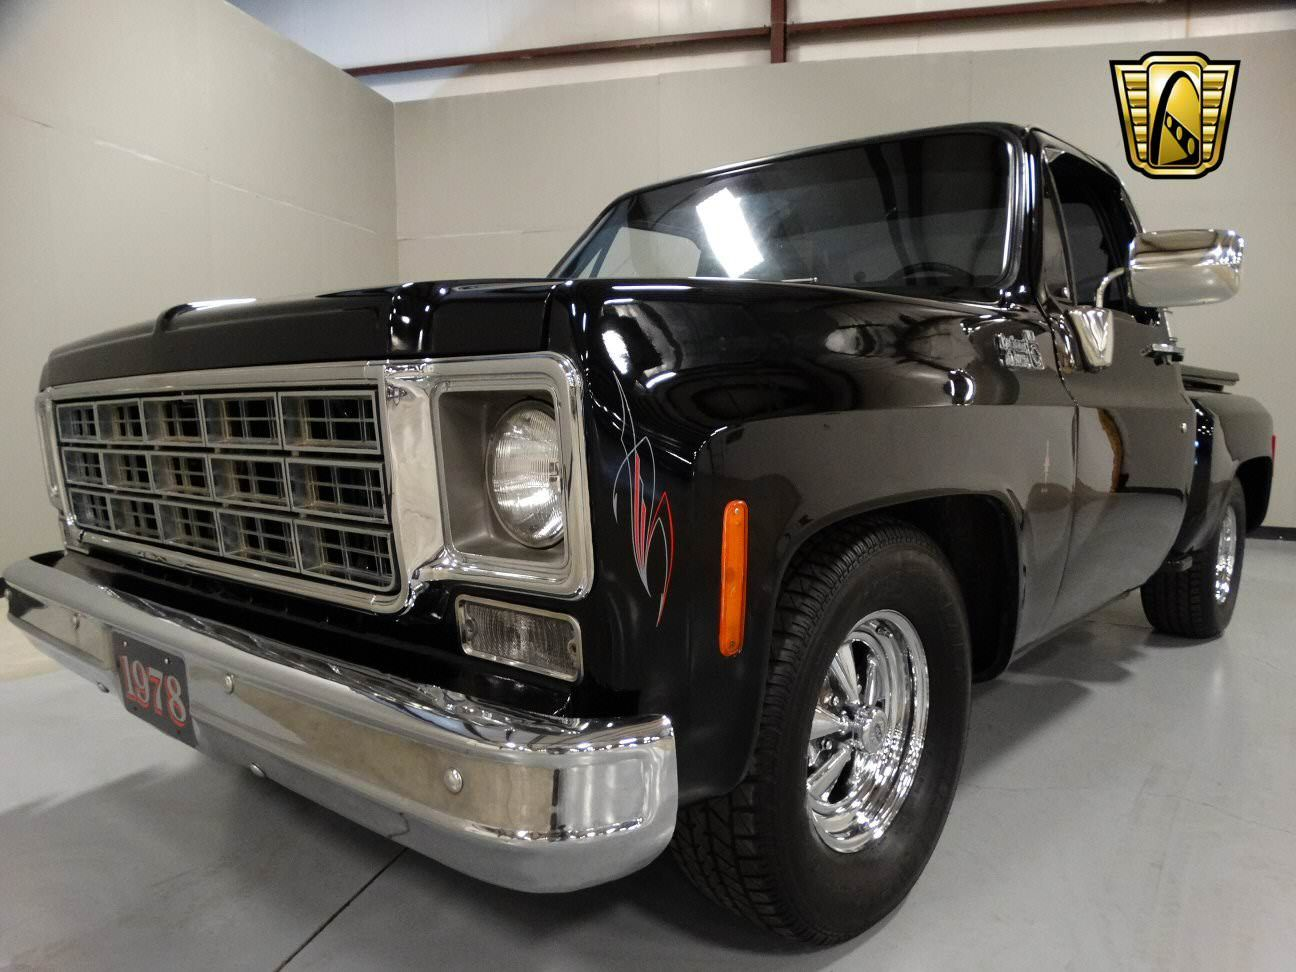 small resolution of 1978 chevy c10 autotrader classics 1978 chevrolet c10 truck black 8 cylinder